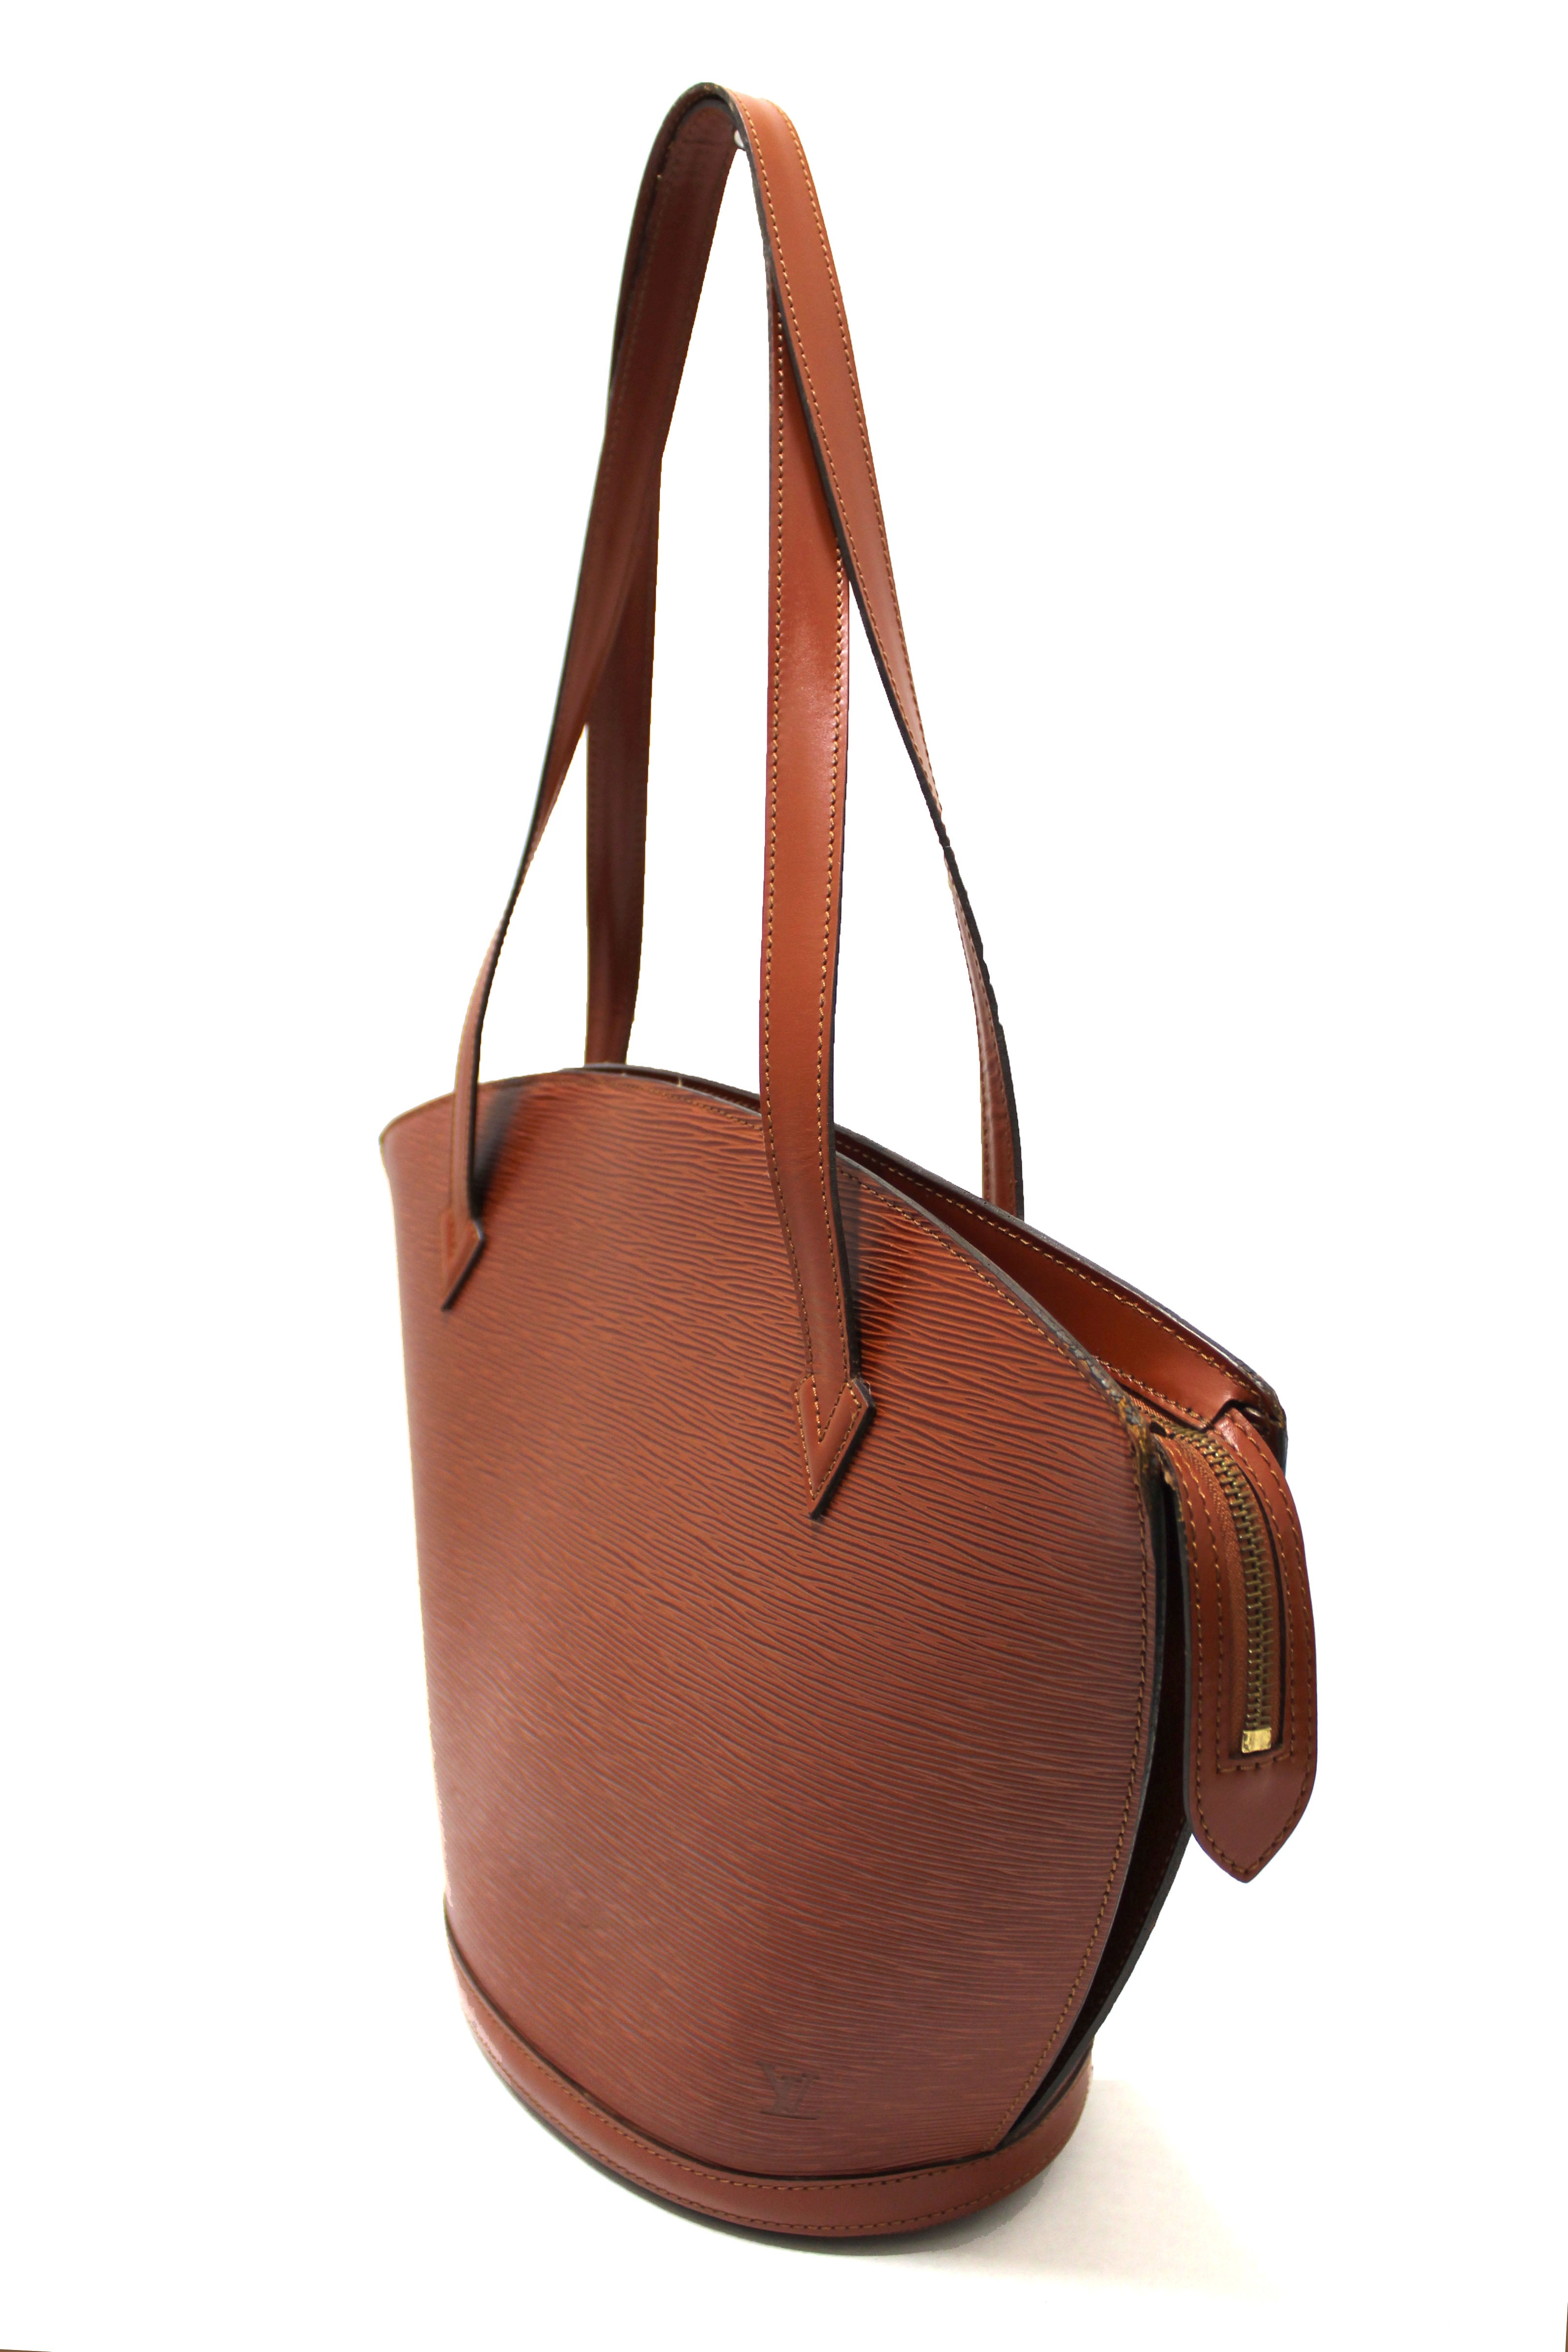 Authentic Louis Vuitton Brown Fawn Epi Large St Jacques Shoulder Tote Bag